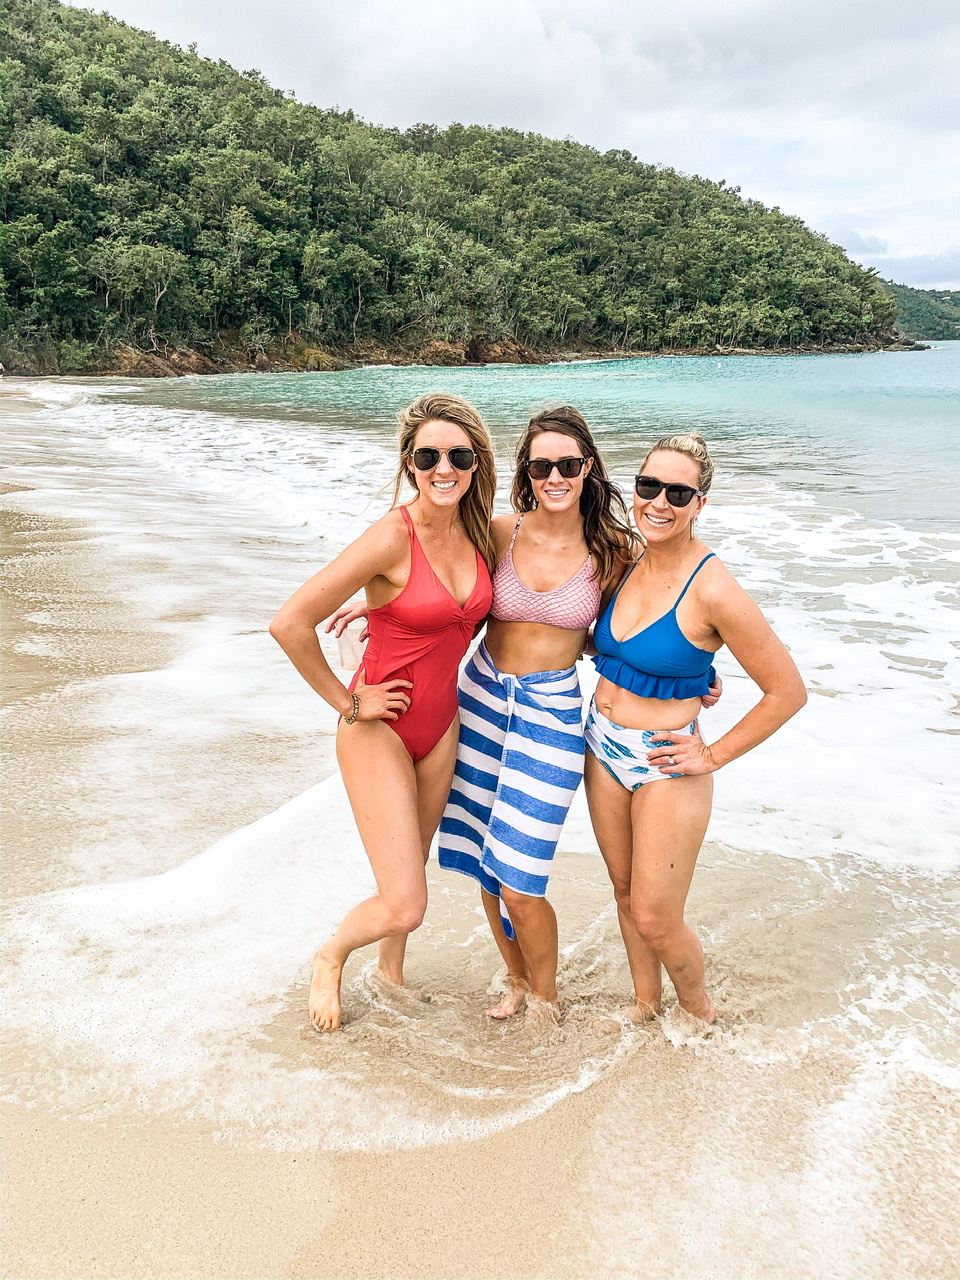 All of the ladies enjoying a day at Magens Bay